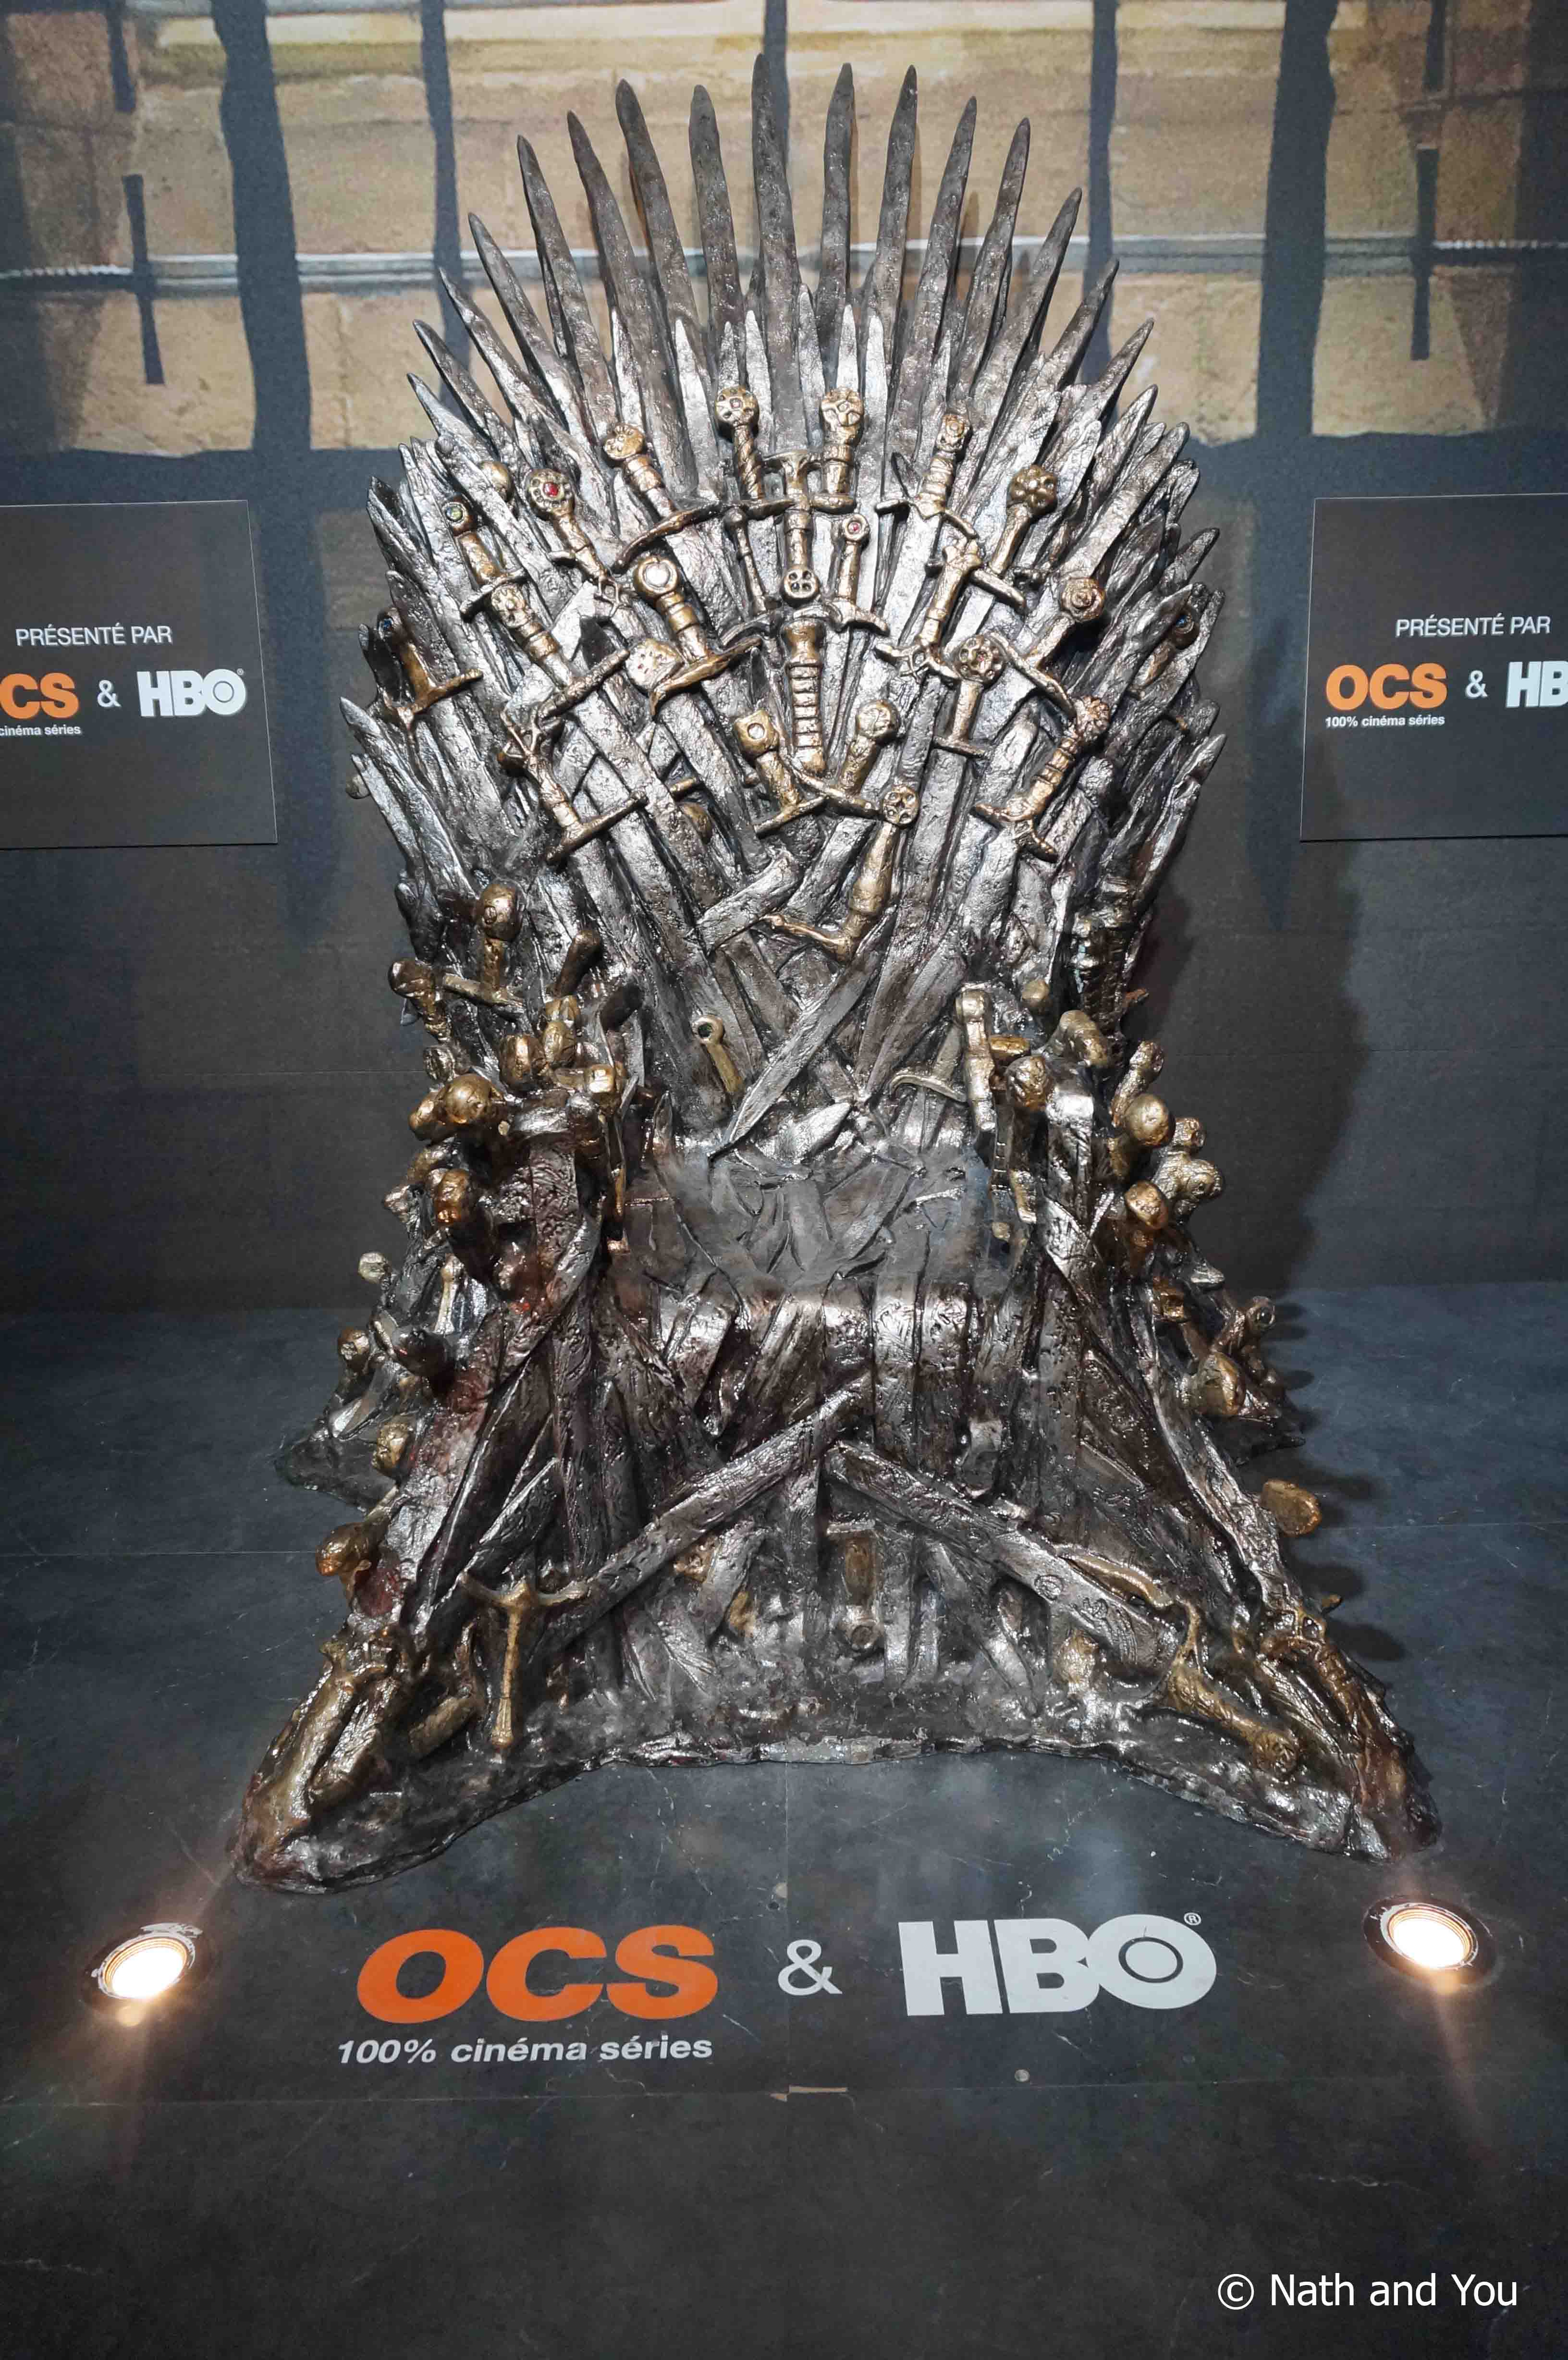 Trone-de-fer-Exposition-Game-of-Thrones-Nath-and-you